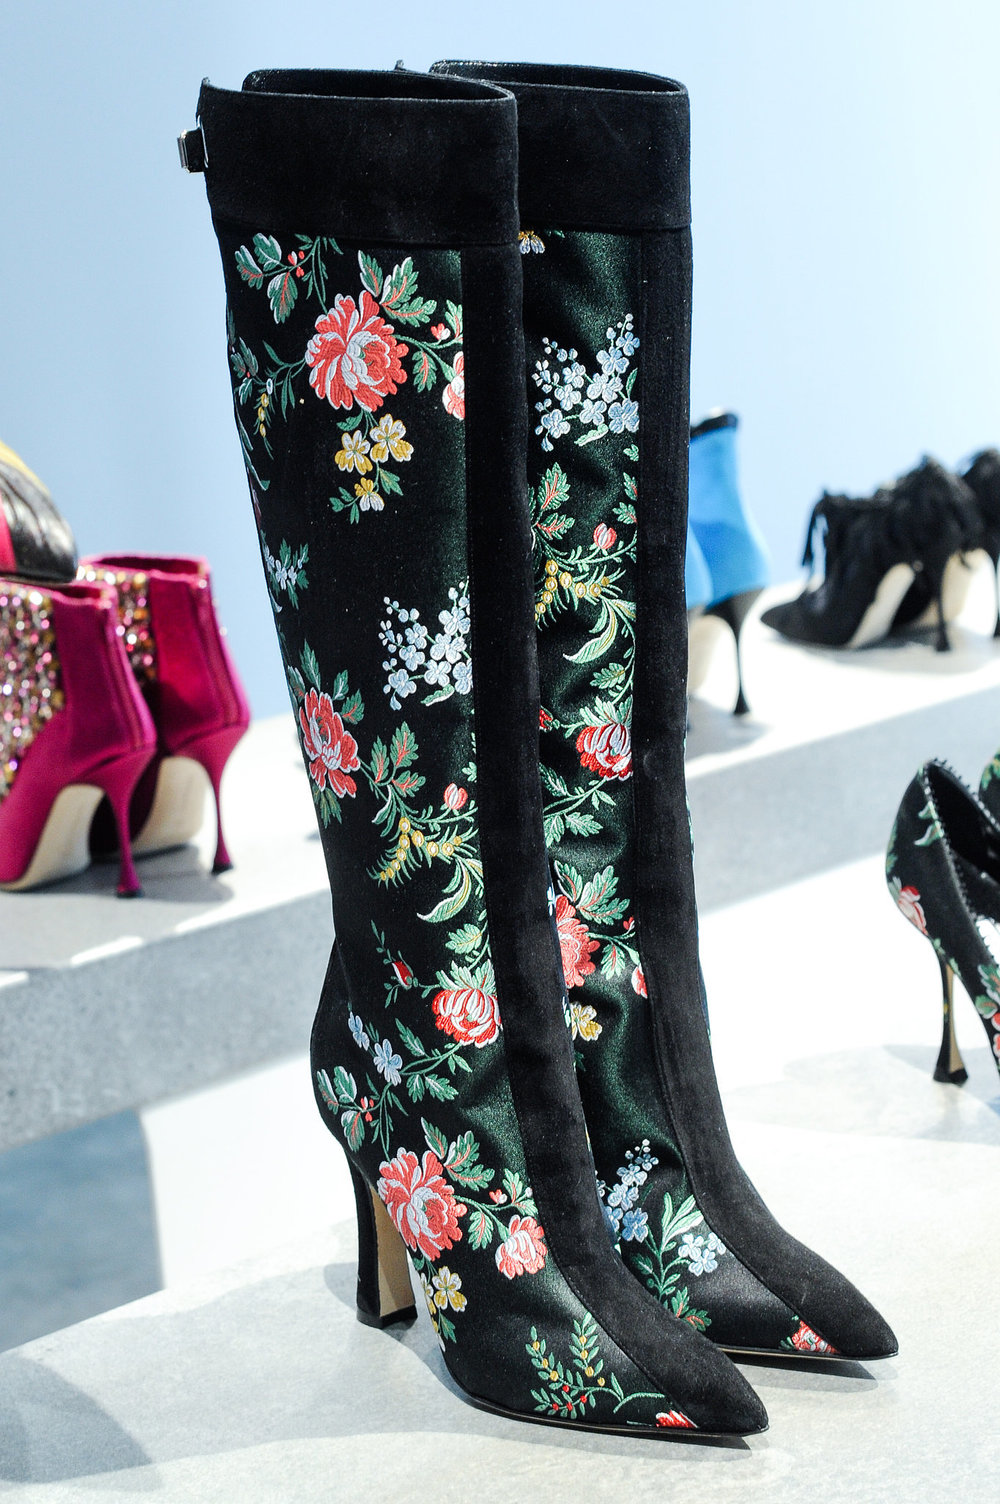 Manolo-Blahnik-Fall-2014-20.jpg